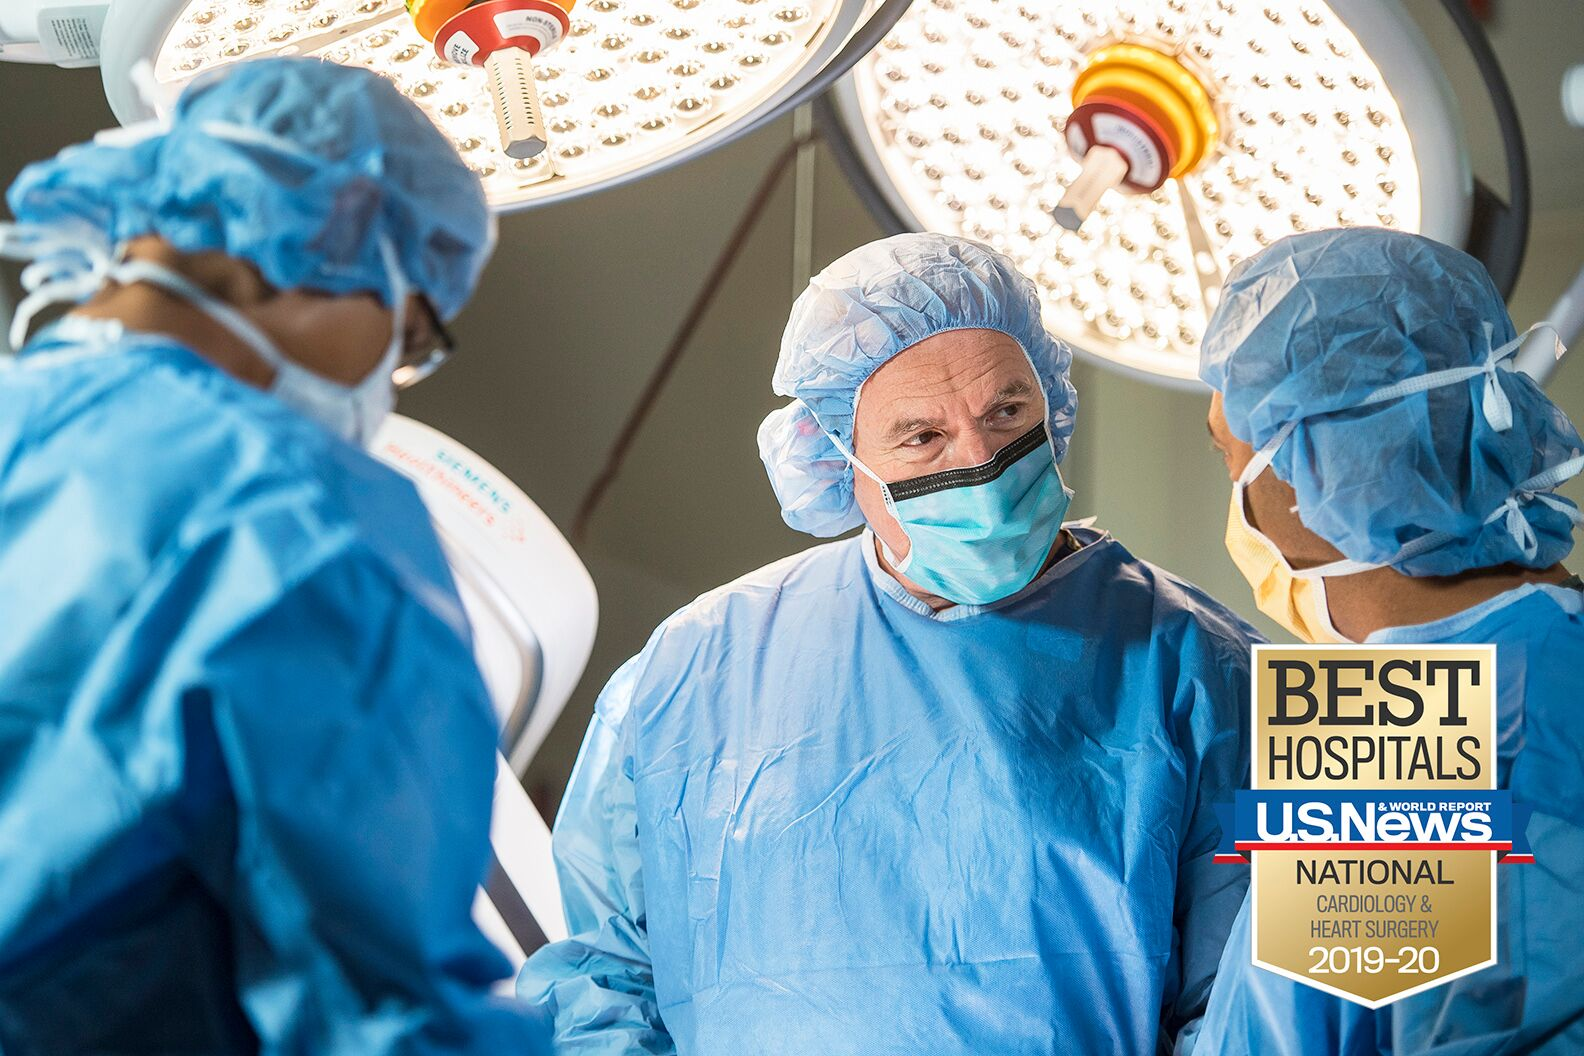 Team of doctors with sterile gowns and face masks stand in operating room over a patient who is unseen.